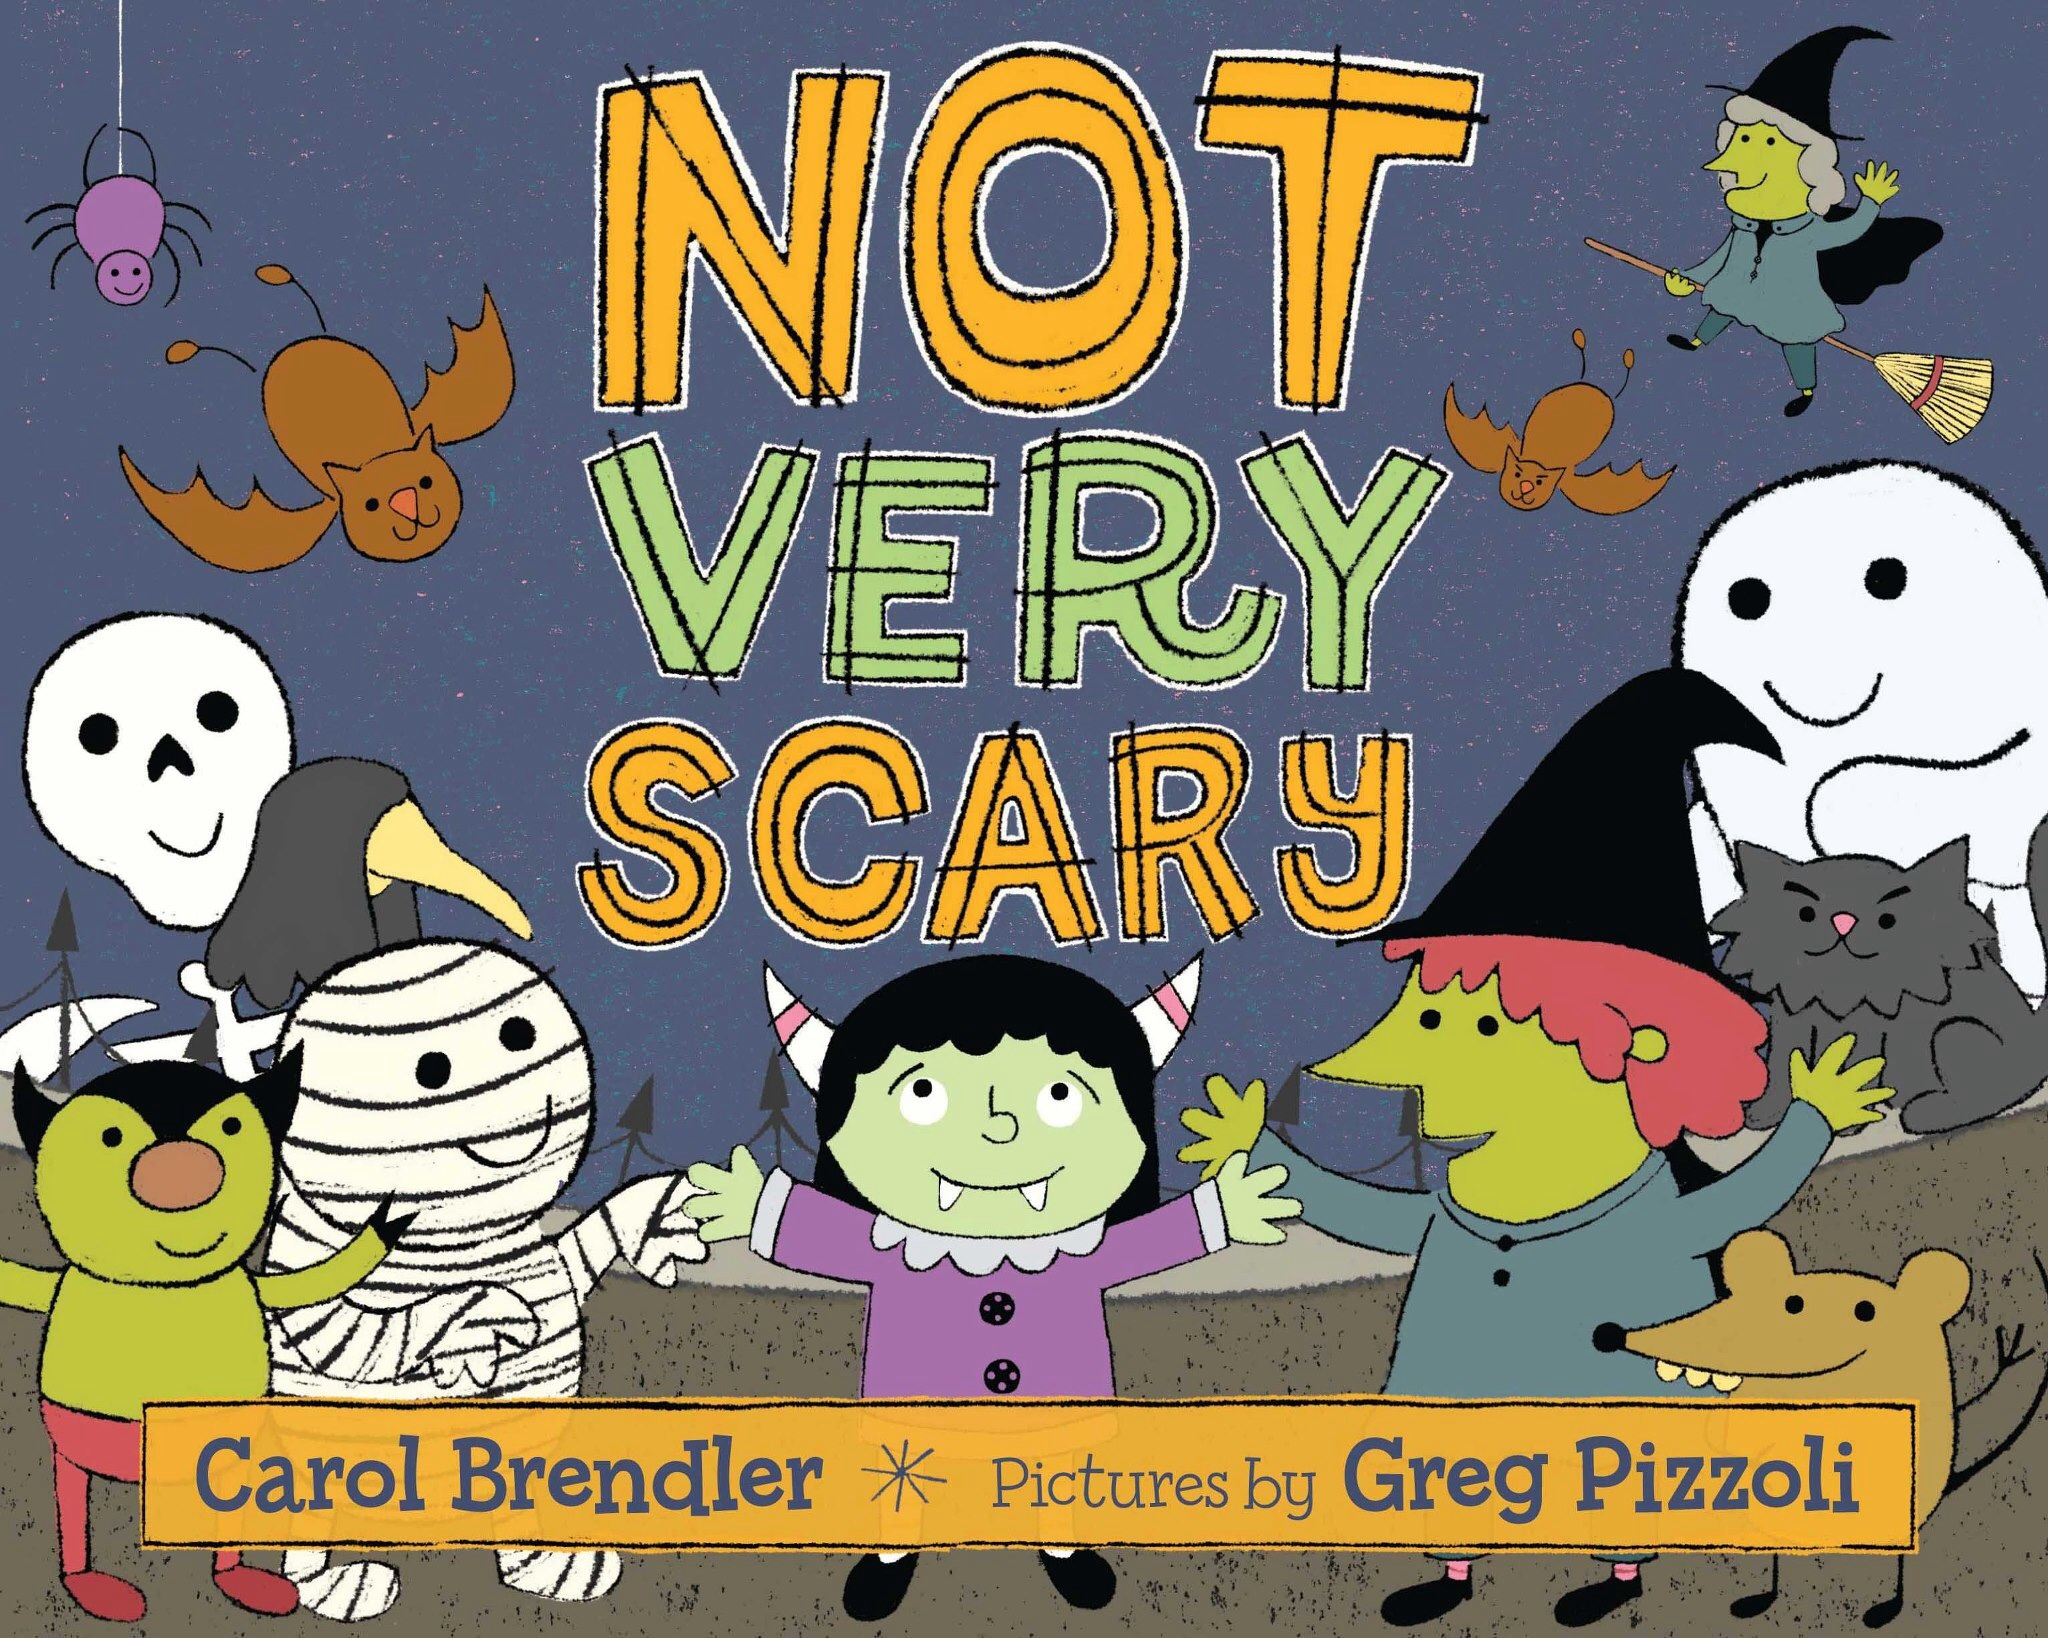 See Not Very Scary on Indiebound